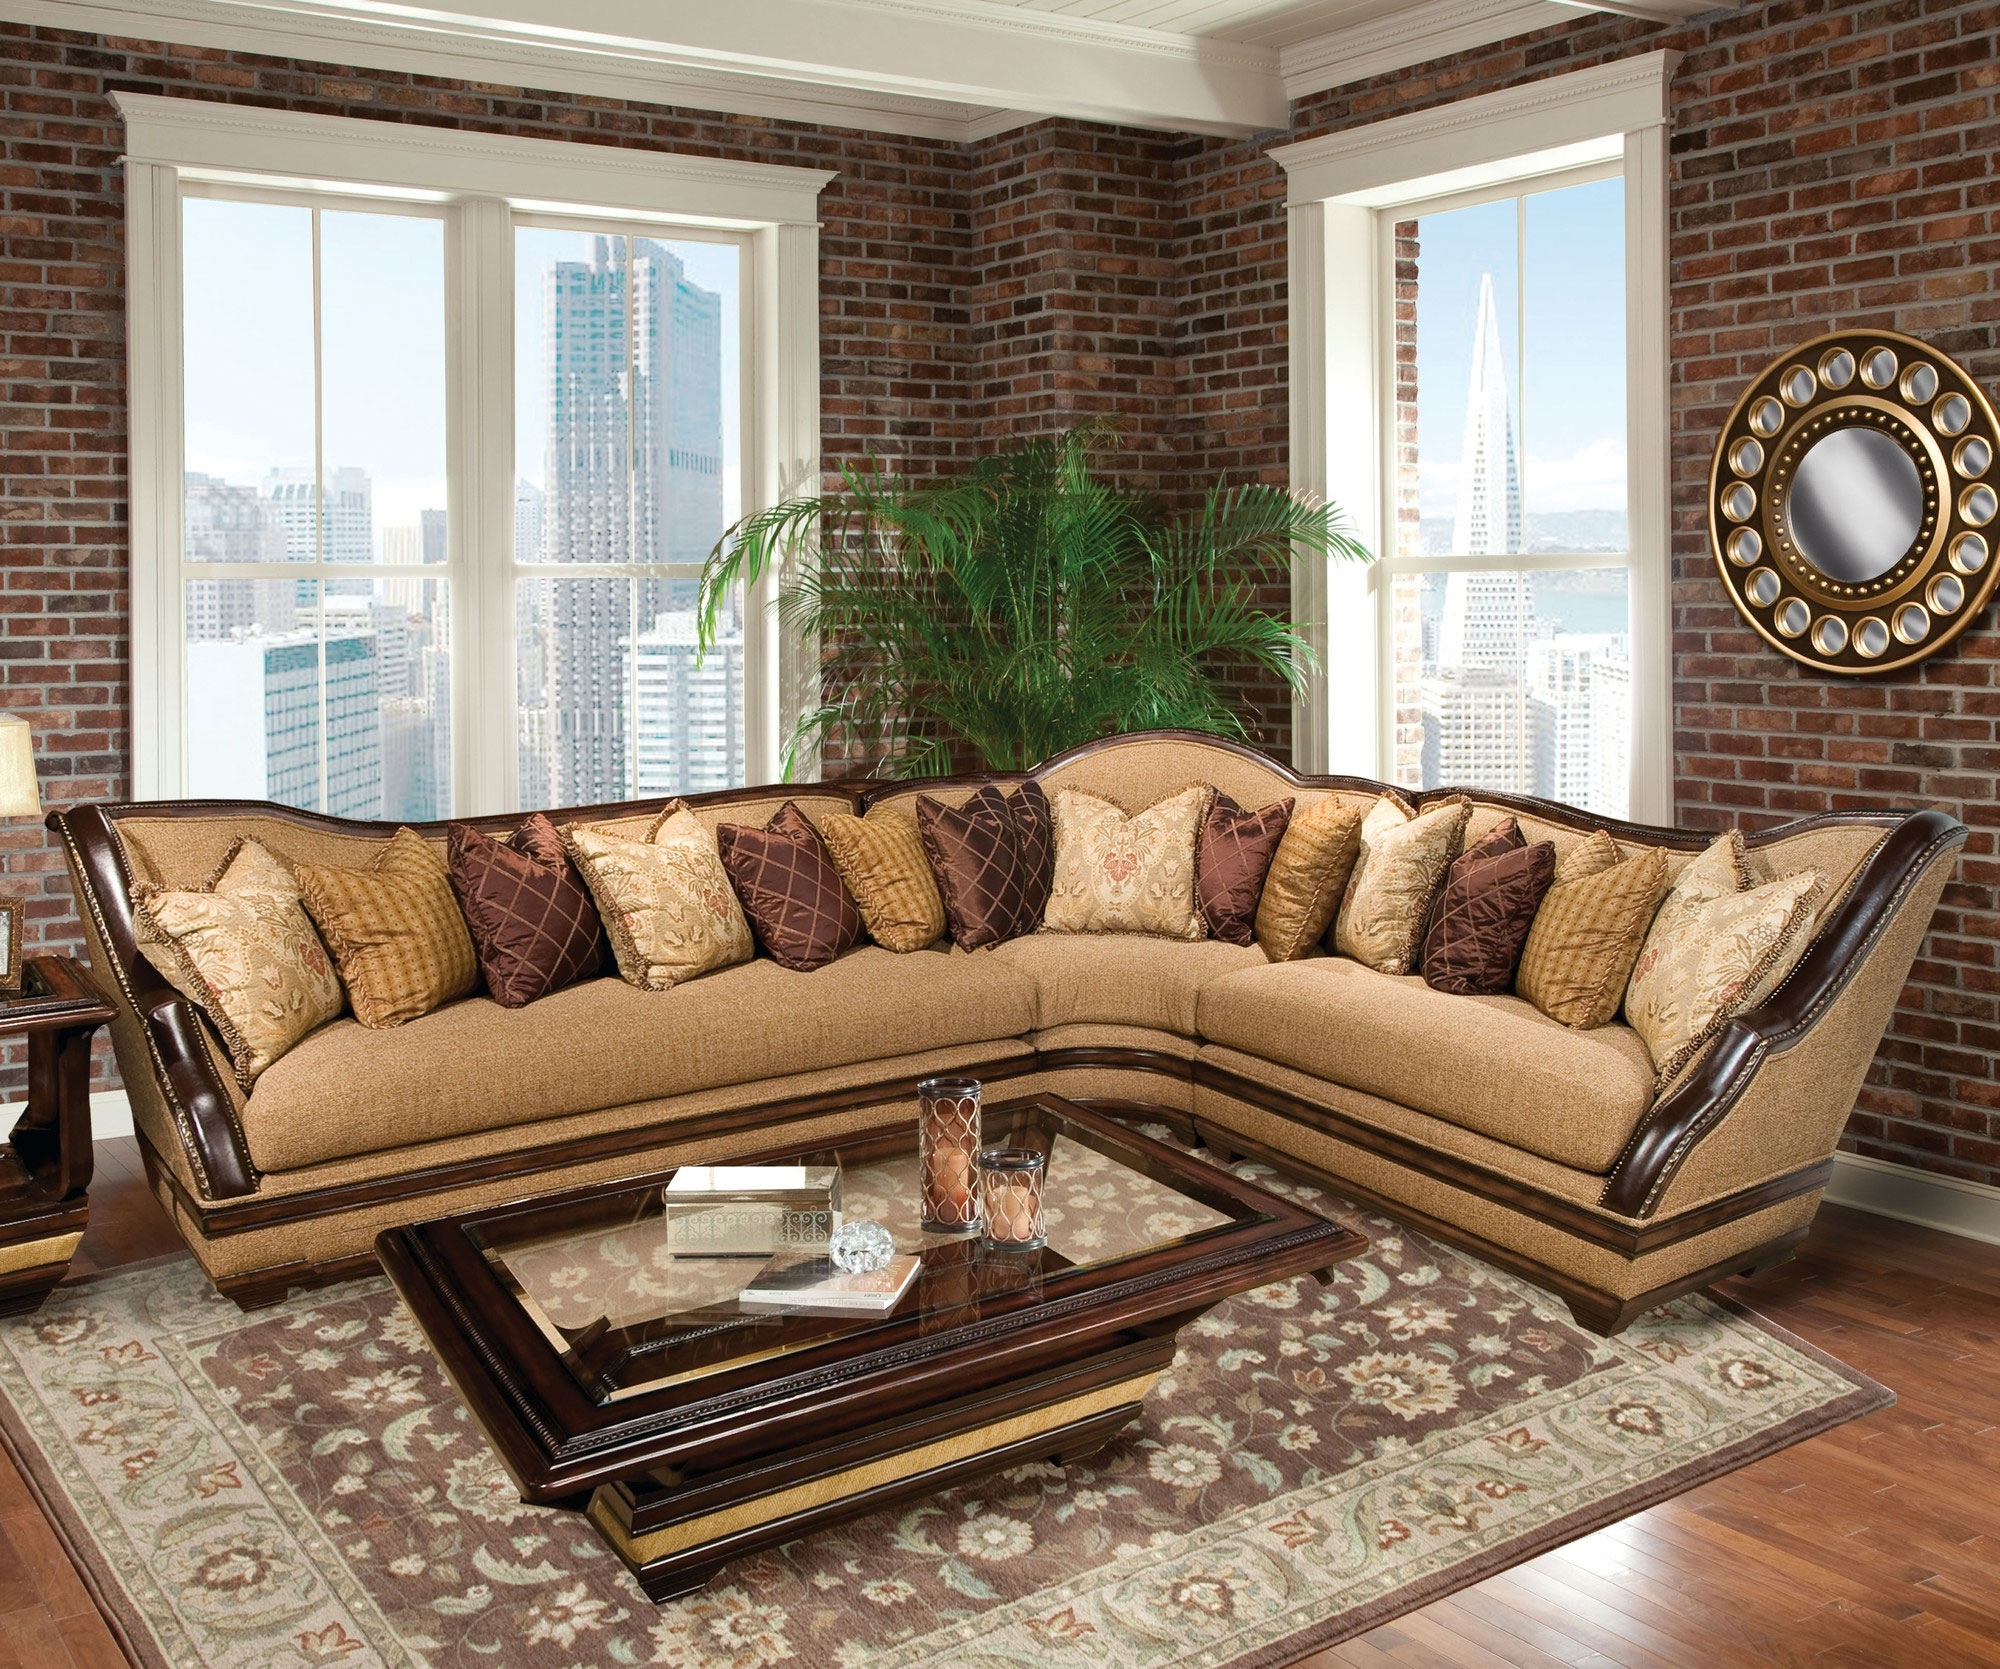 Luxury Sectional Sofas Regarding Most Current Benetti's Italia Beladonna Wood Trim Sectional Sofa Set The (View 10 of 20)